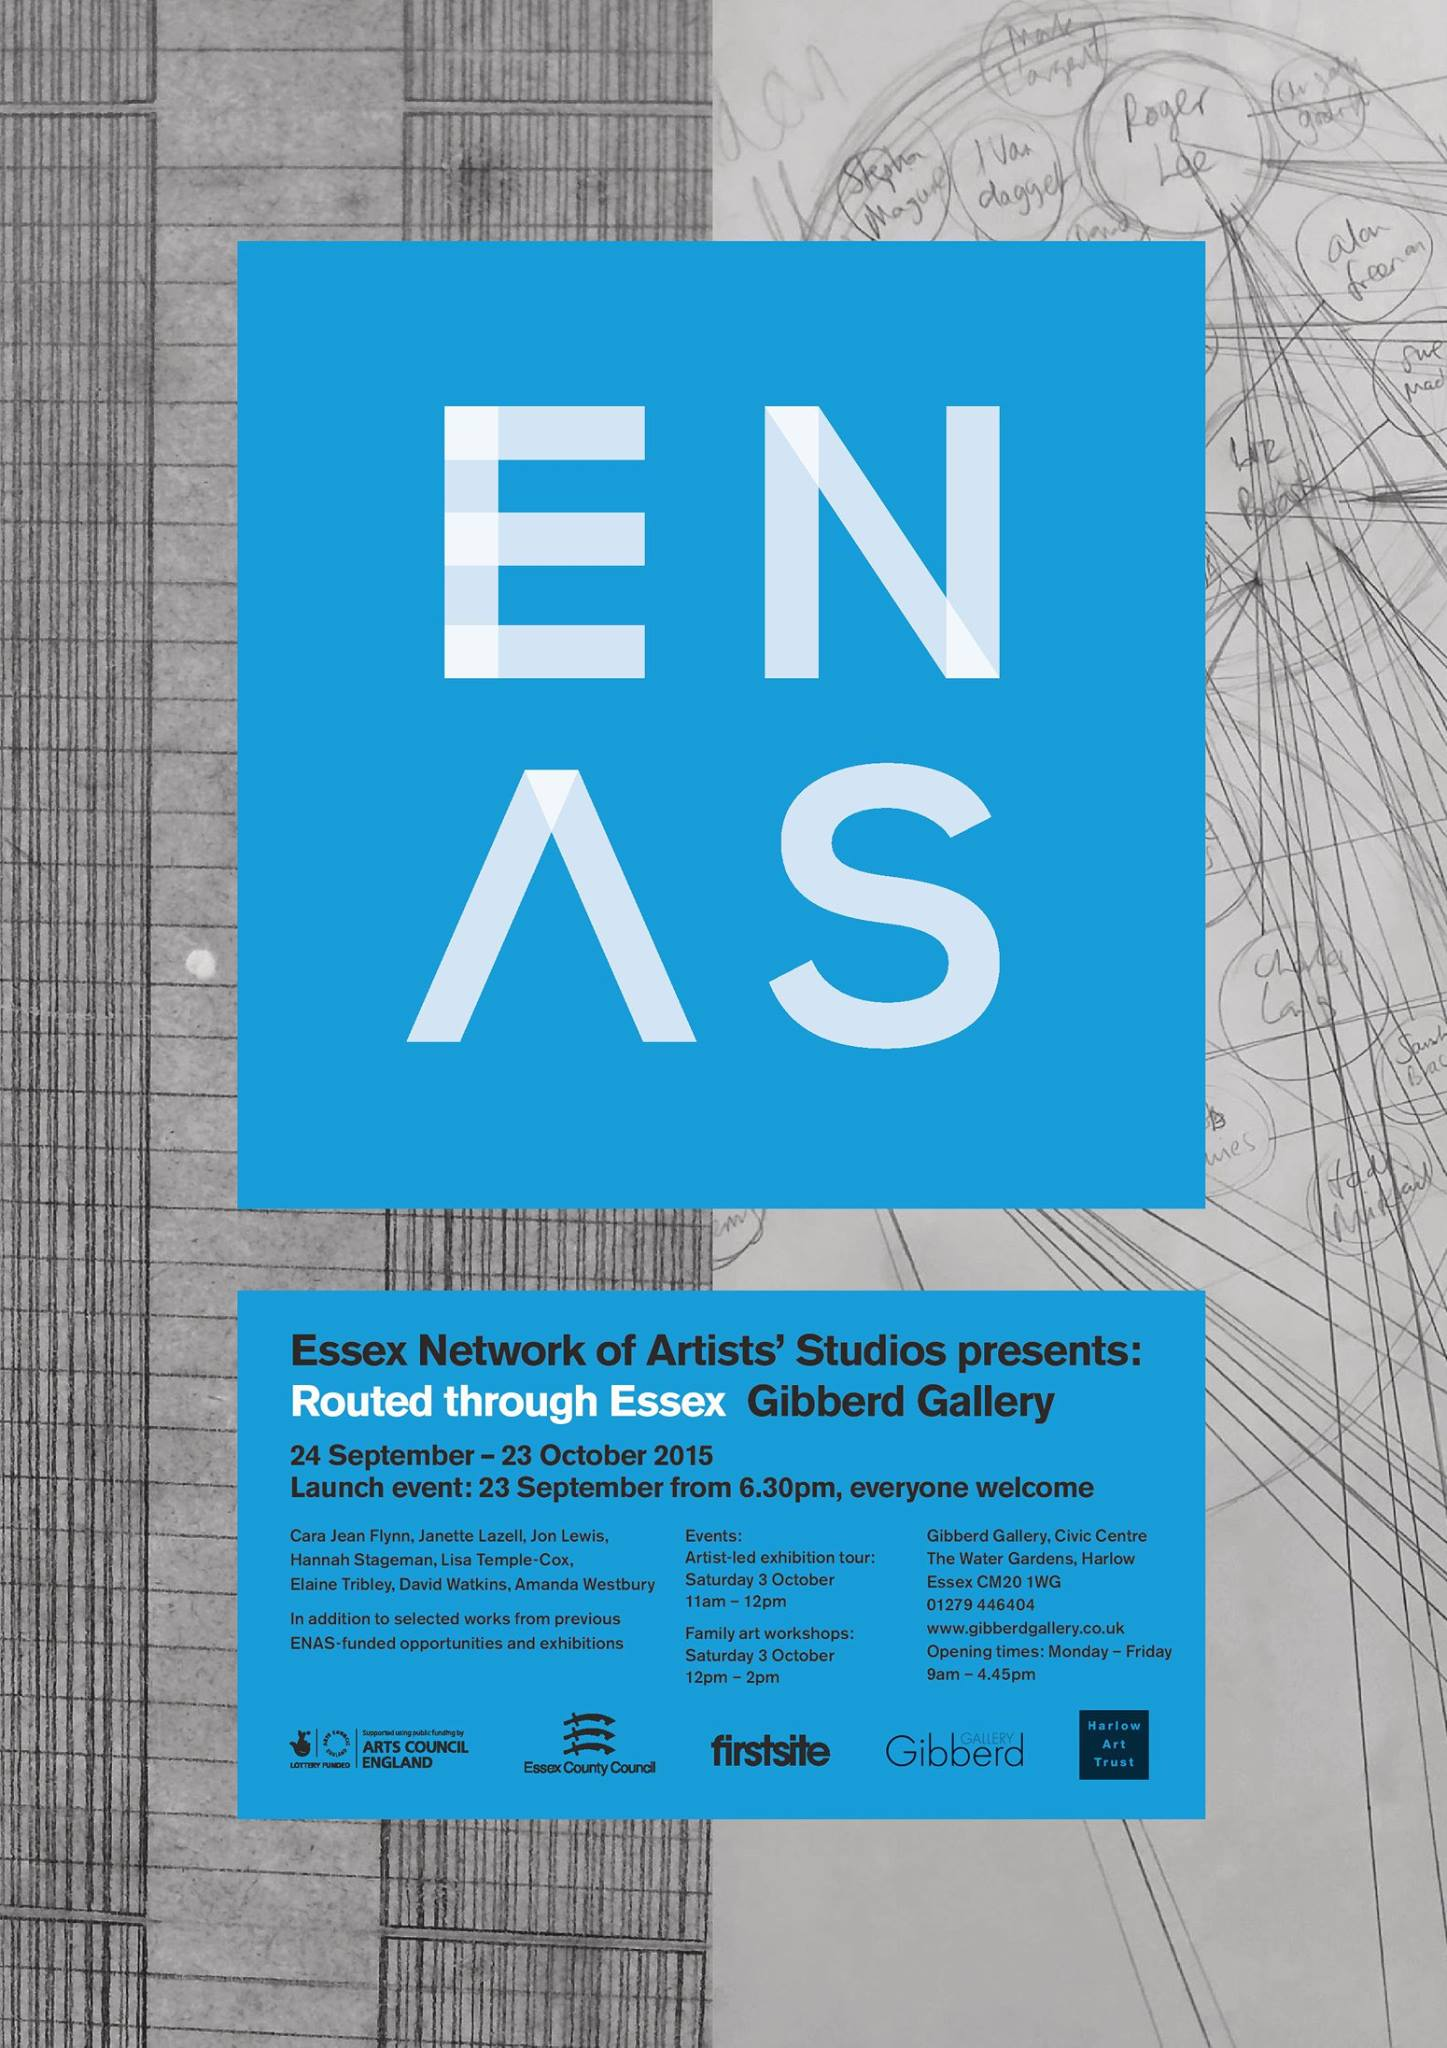 Exhibition poster and publication line, Essex Network of Artists' Studios. Designed by Creative Co-op.